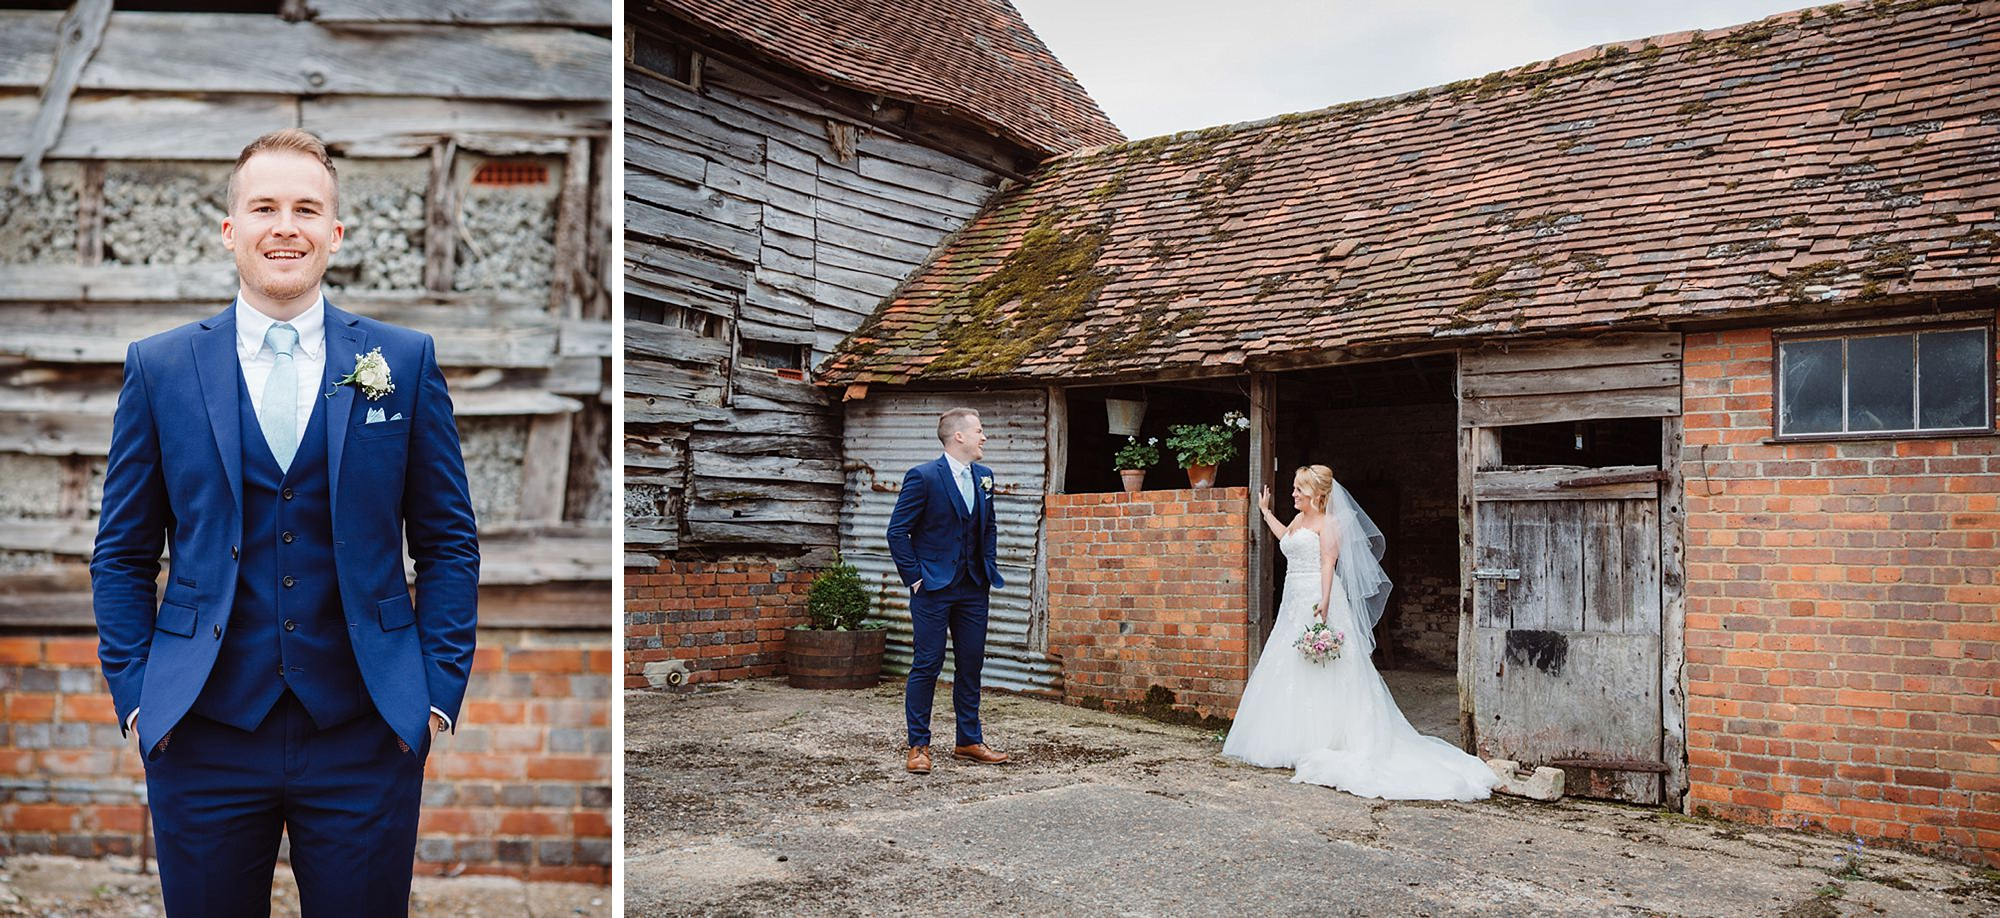 Old Greens Barn Newdigate wedding photography bride and groom together in barns